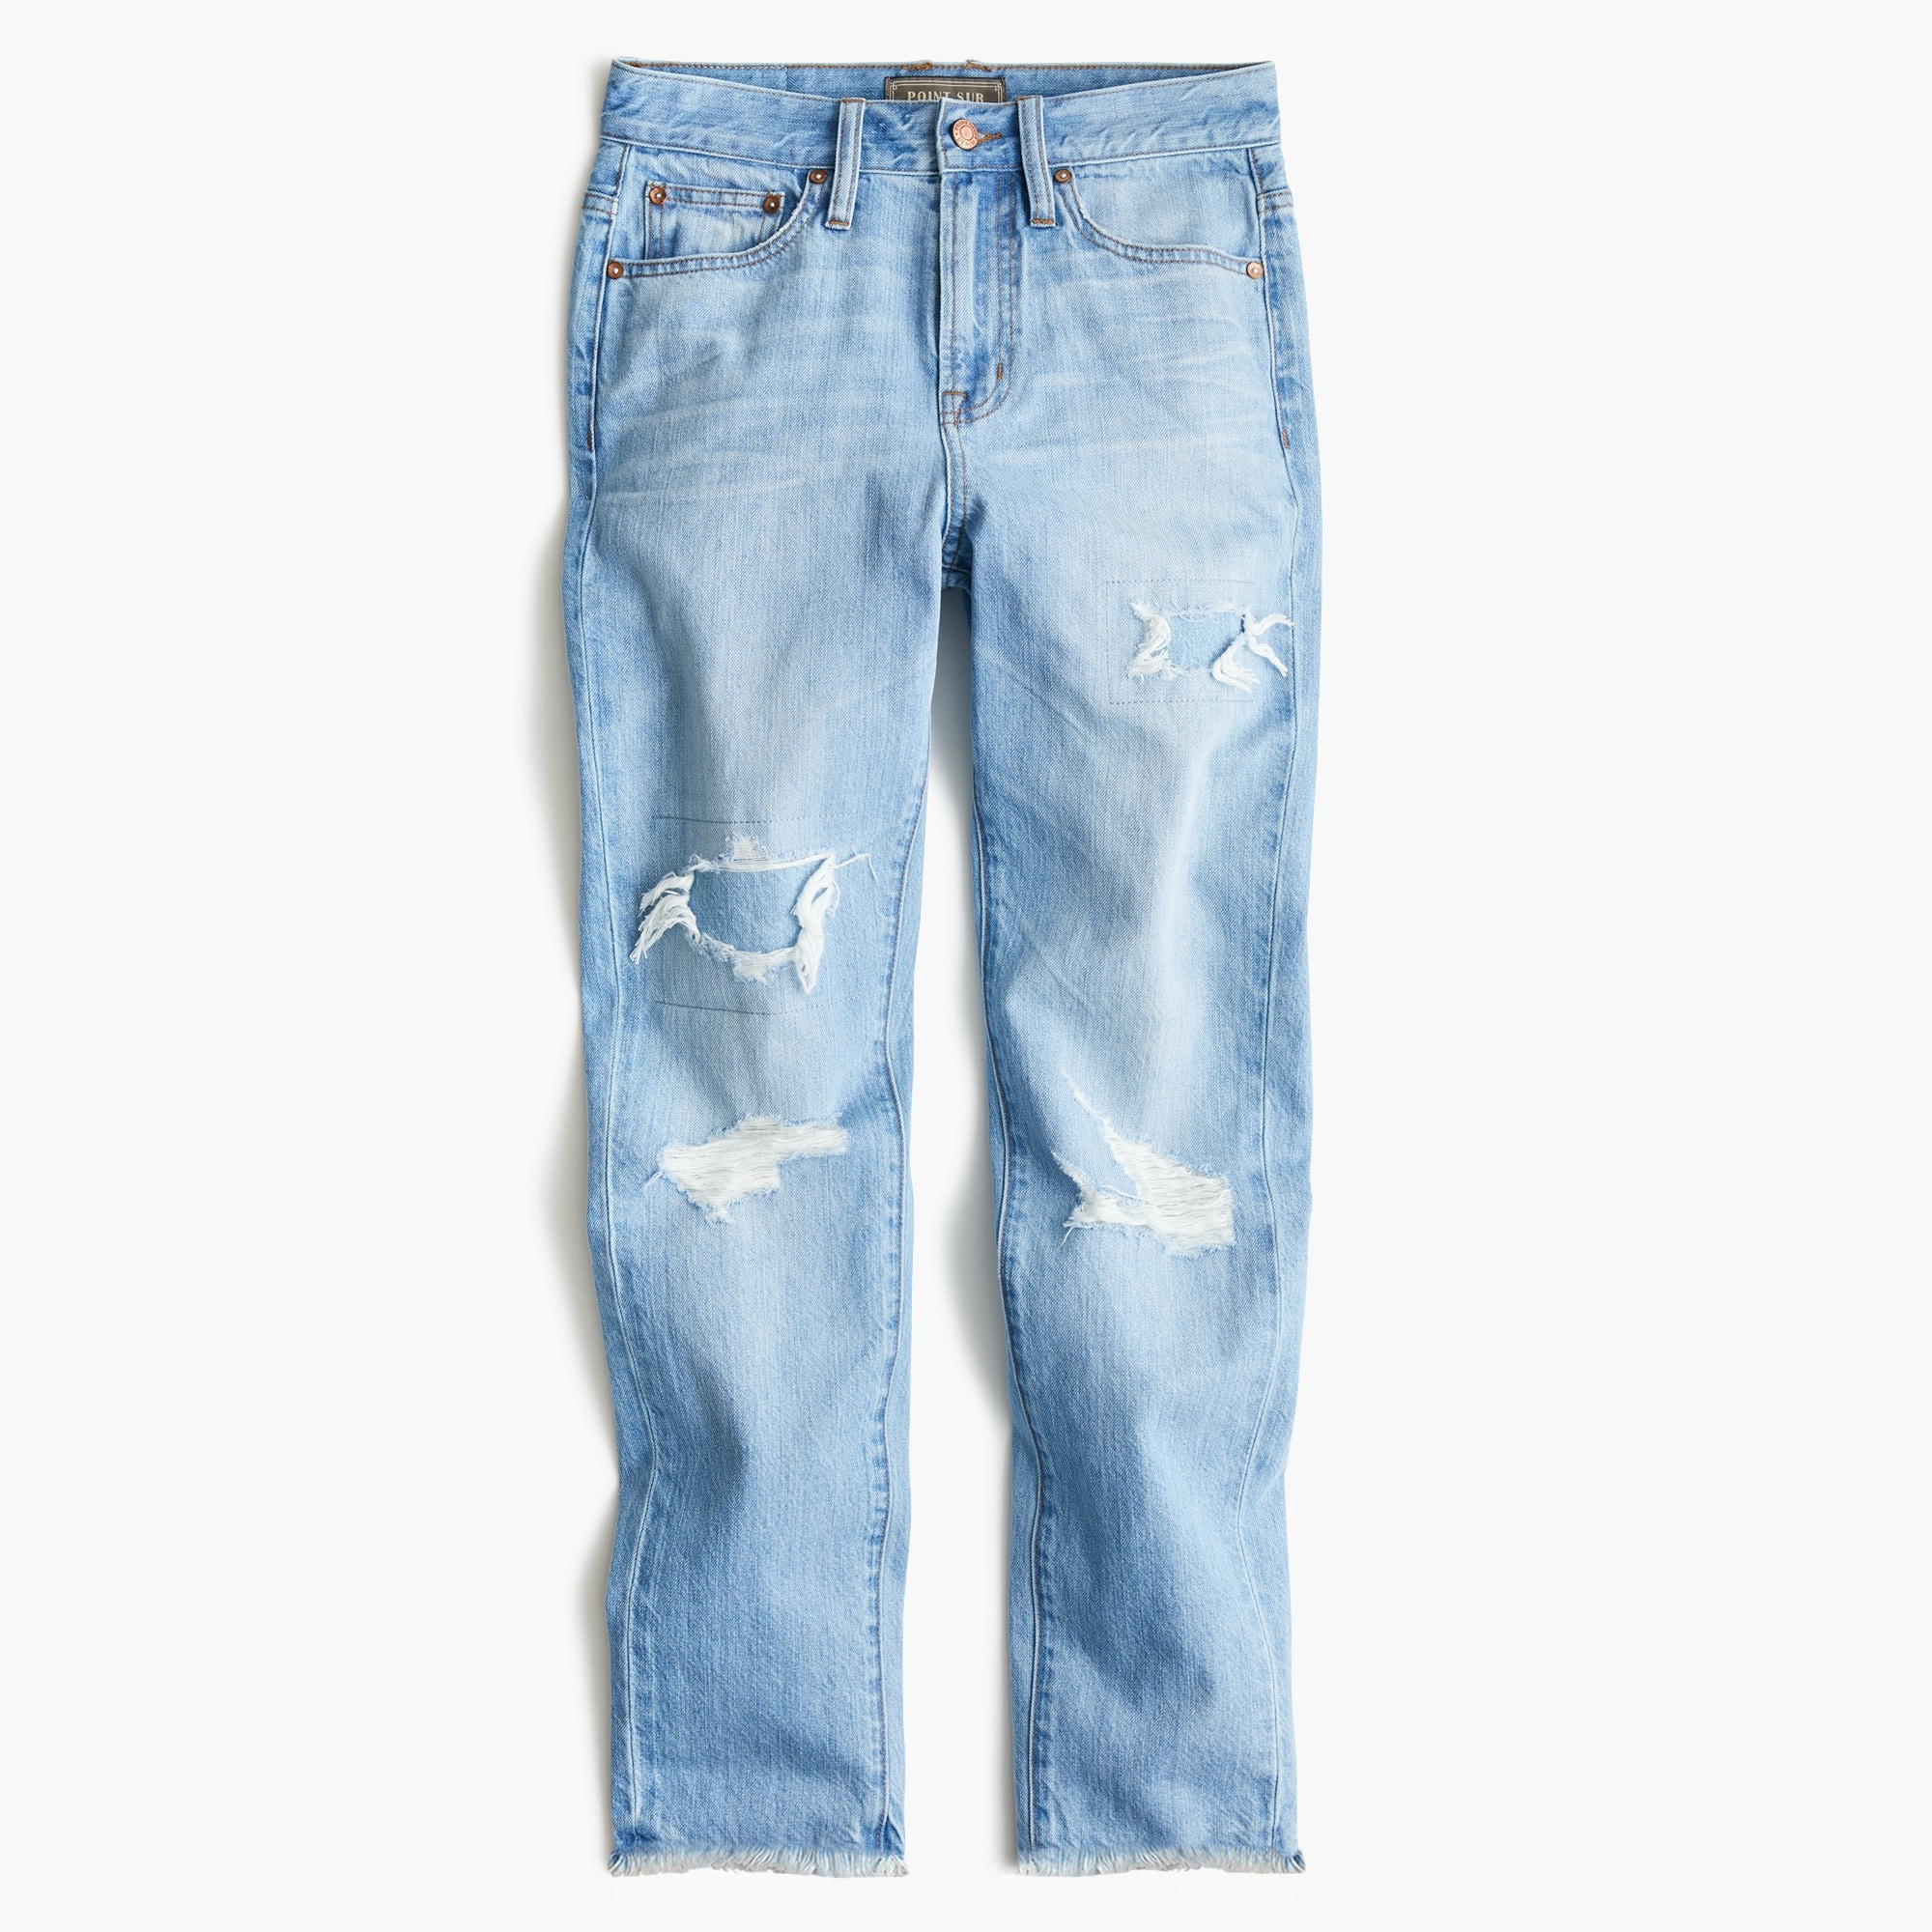 Tall Point Sur high-rise retro straight jean in light wash